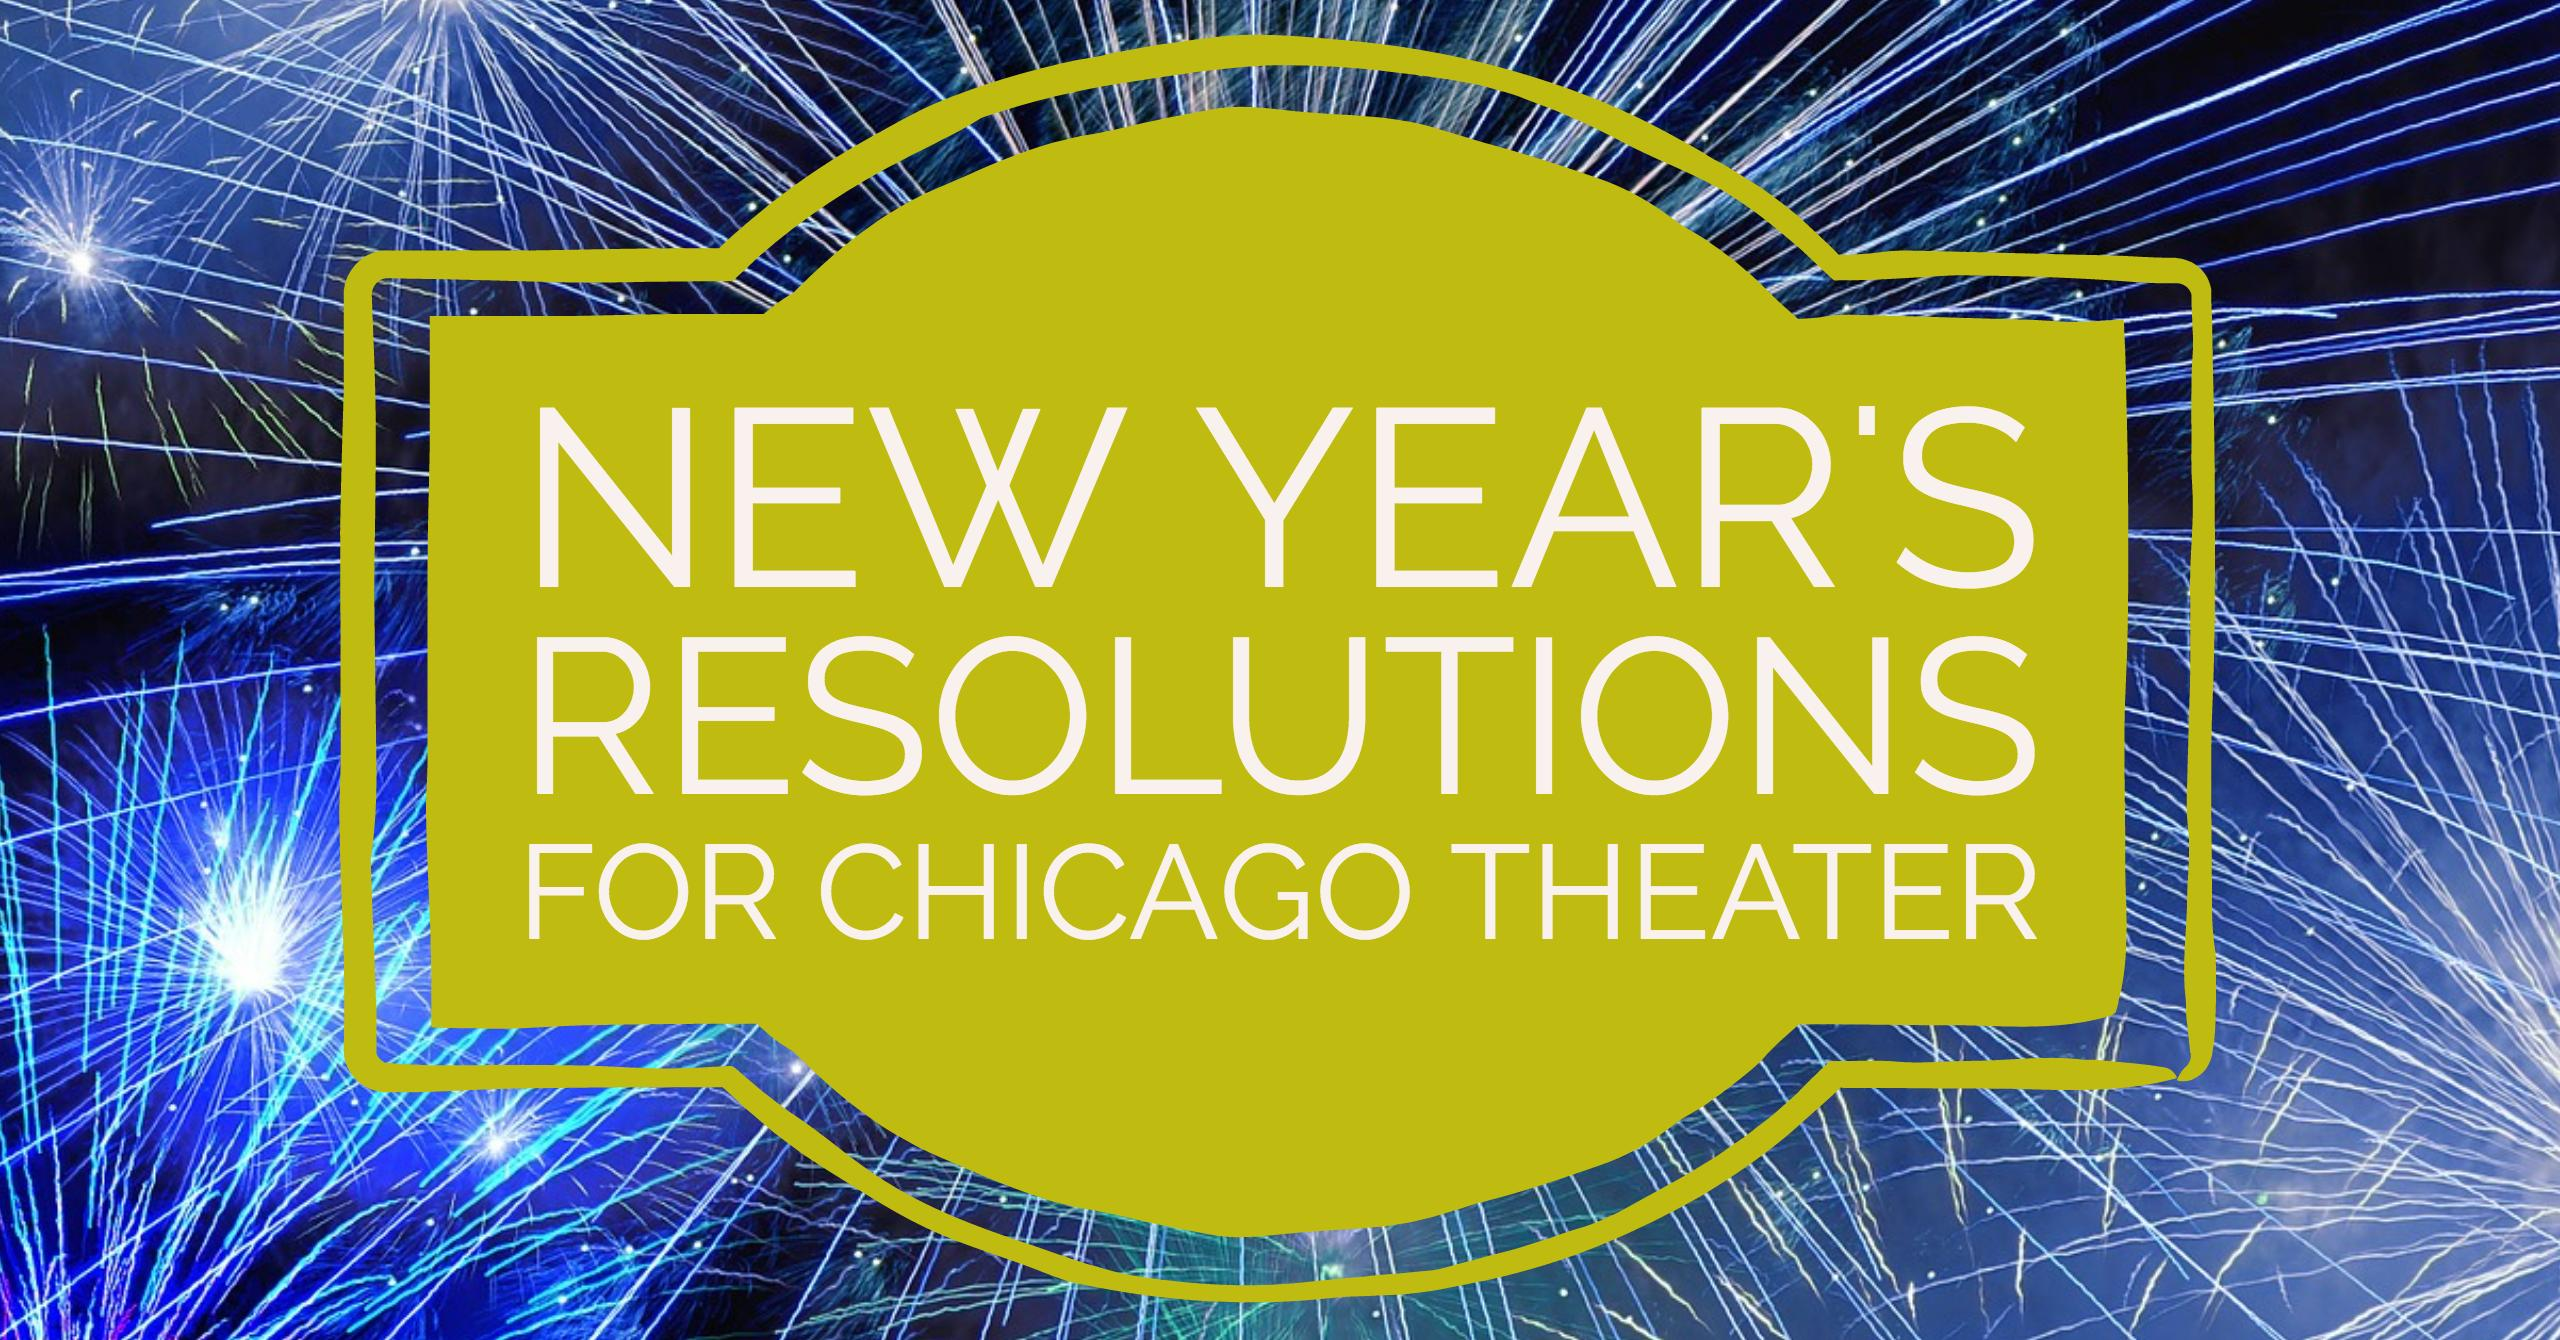 New Year's Resolutions for Chicago Theater